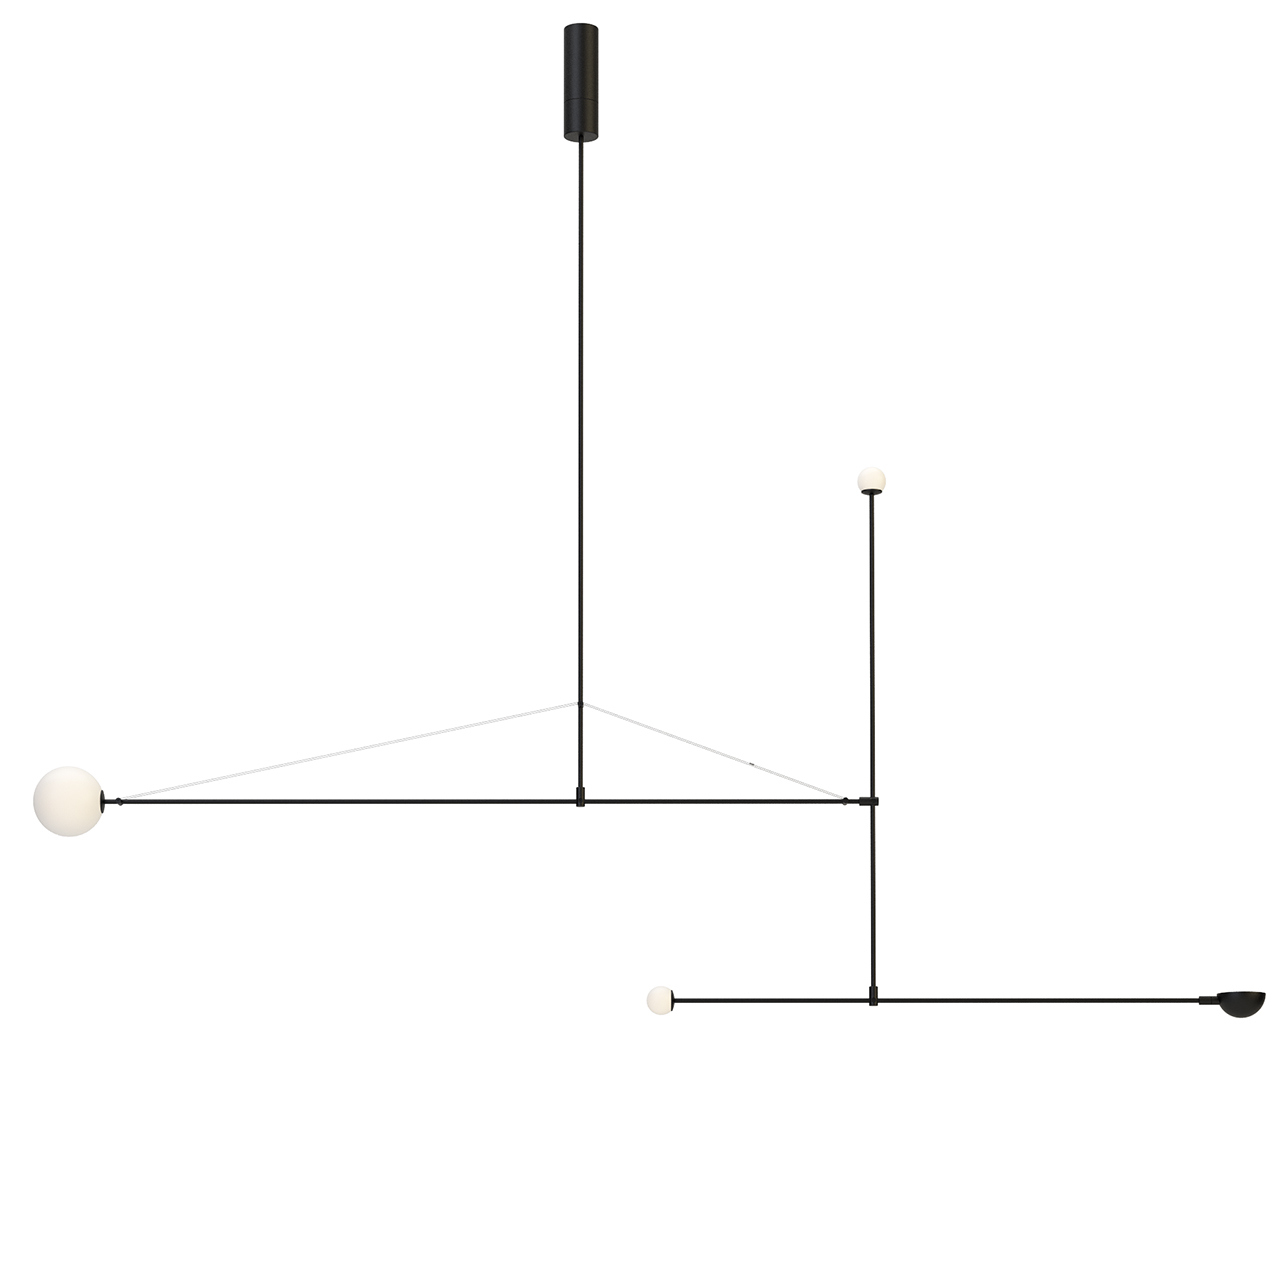 Mobile Chandelier 1 by Michael Anastassiades